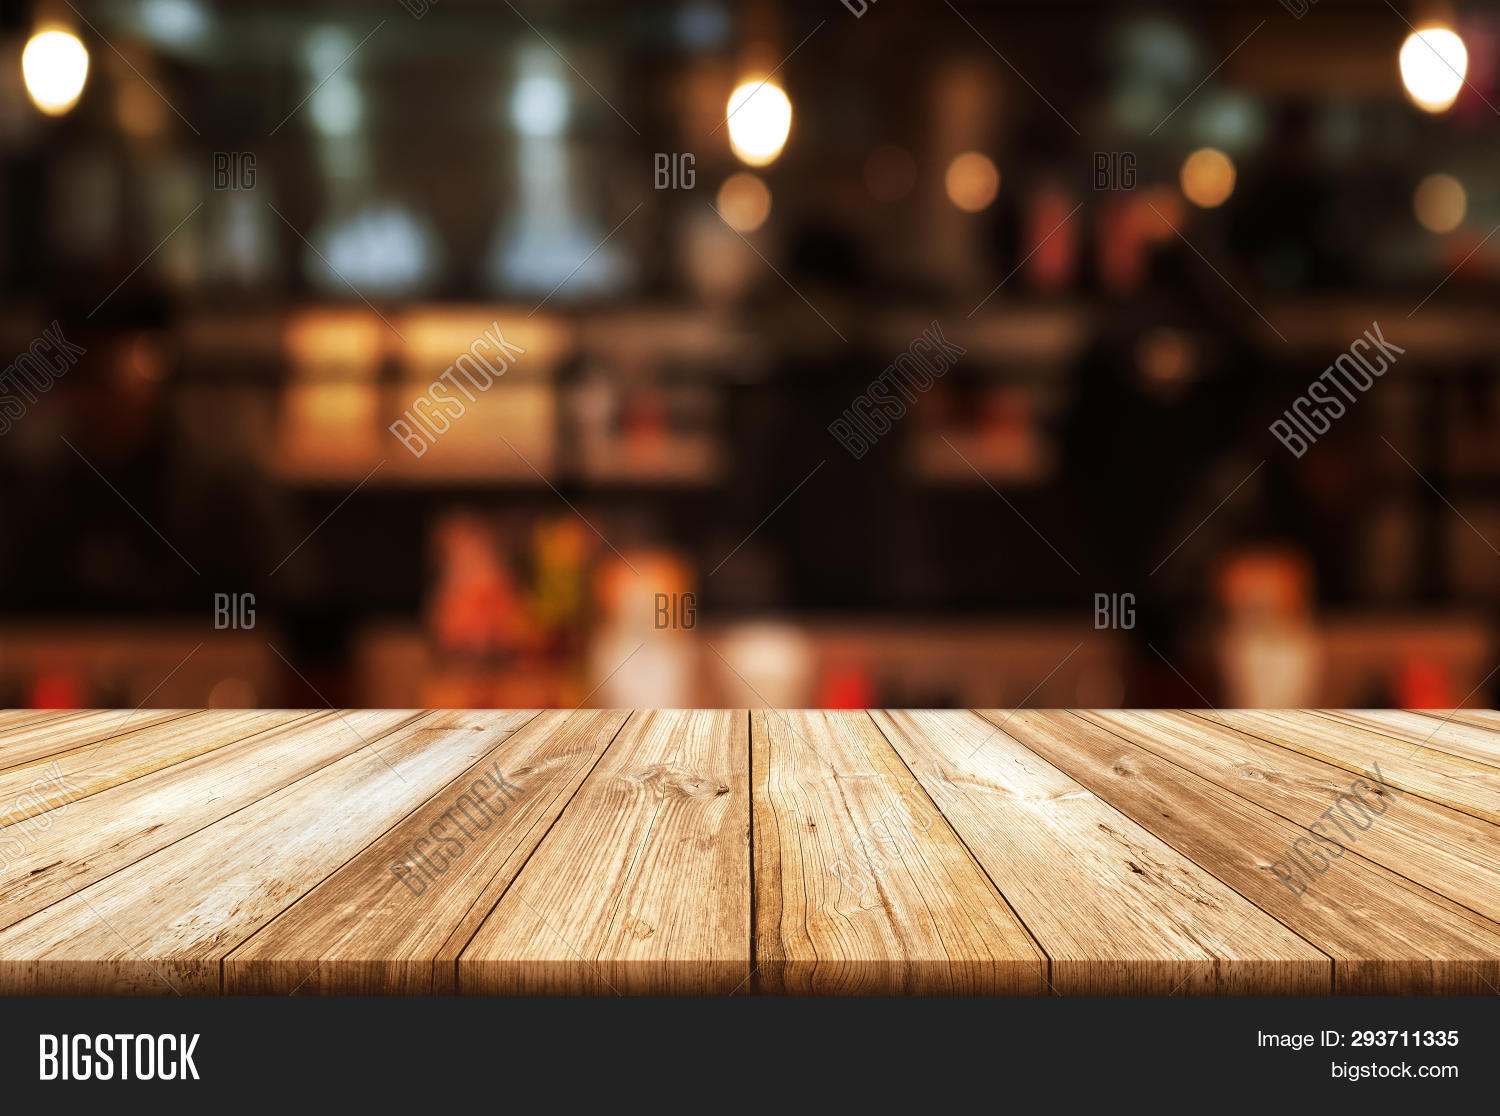 abstract,advertise,background,bar,blur,blurred,blurry,board,bokeh,bright,brown,cafe,coffee,counter,decoration,design,desk,dining,display,empty,focus,food,furniture,hardwood,interior,kitchen,light,modern,old,place,plank,product,restaurant,retro,room,rustic,shop,space,surface,table,tabletop,texture,top,vintage,wall,wallpaper,window,wood,wooden